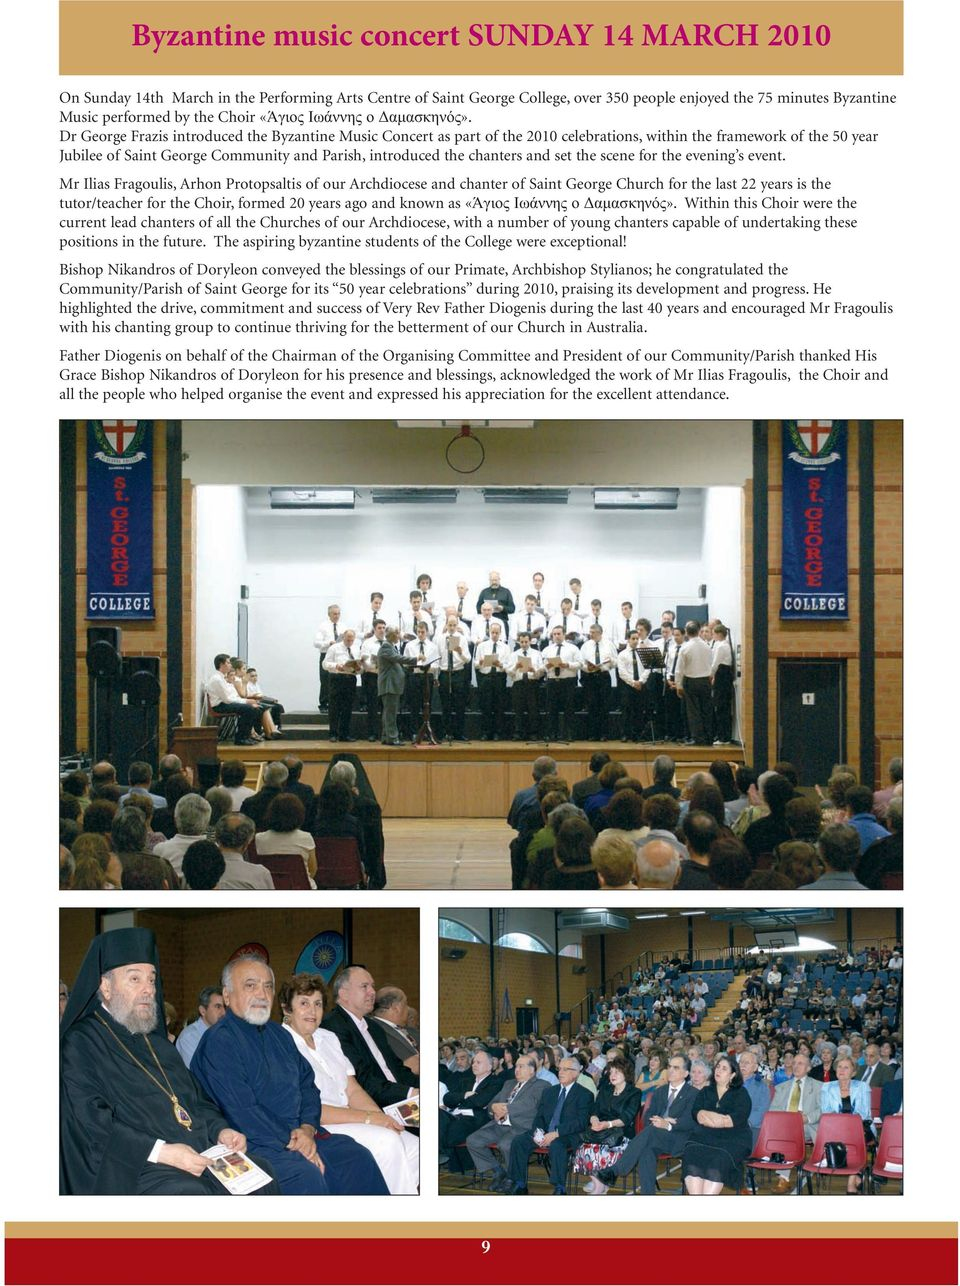 Dr George Frazis introduced the Byzantine Music Concert as part of the 2010 celebrations, within the framework of the 50 year Jubilee of Saint George Community and Parish, introduced the chanters and